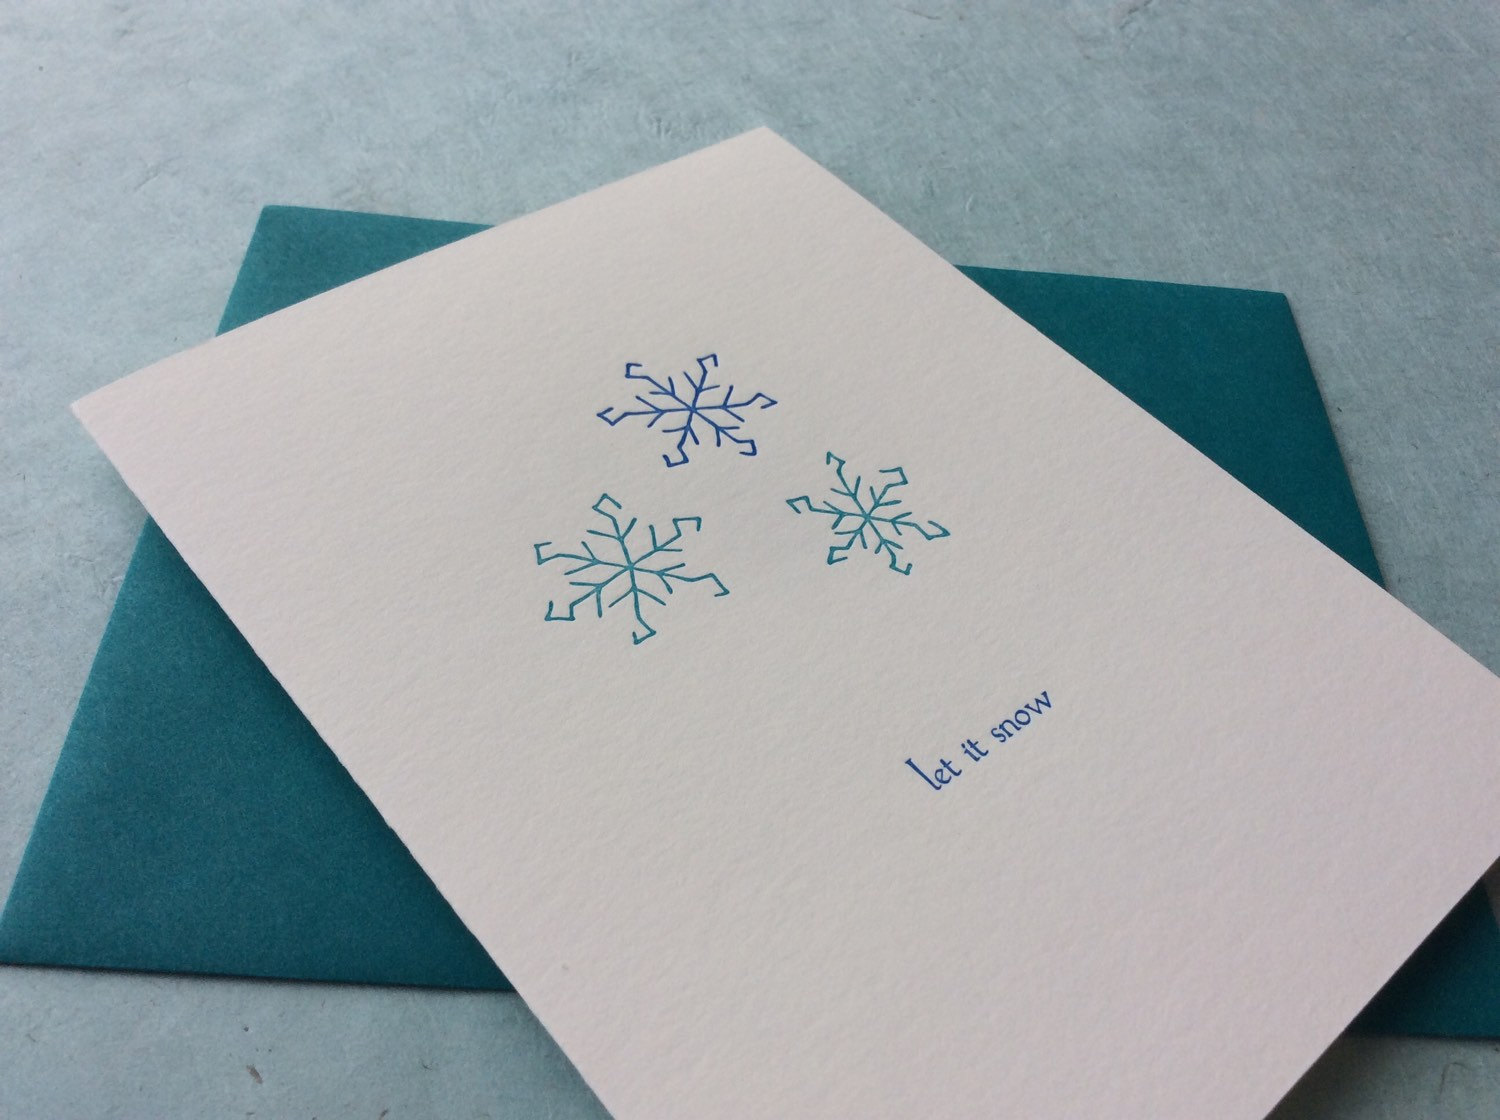 let it snow box of six letterpress holiday cards - Letterpress Holiday Cards